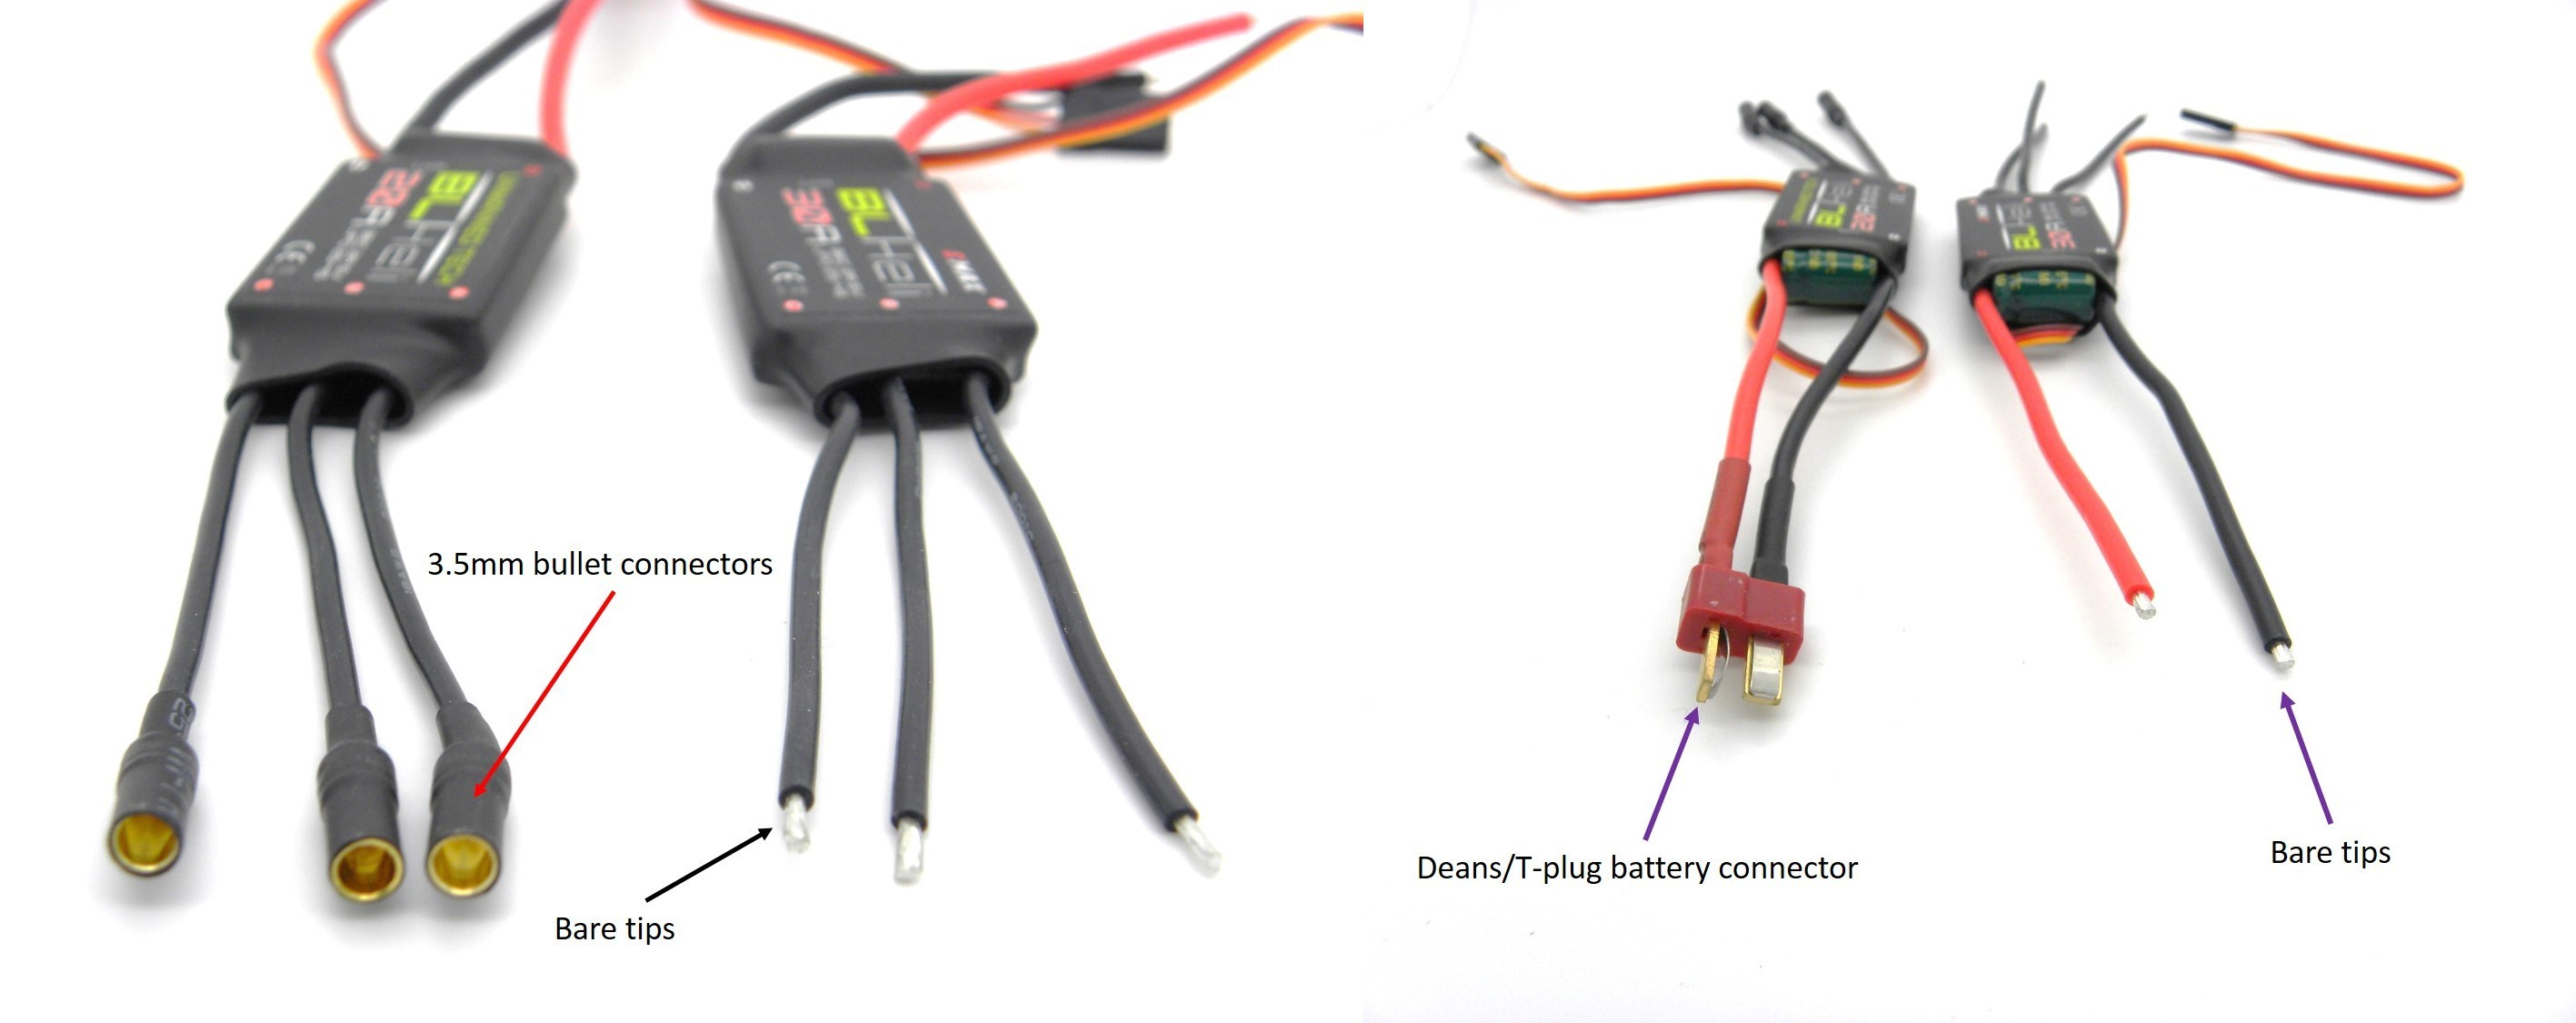 8776cd90bb804ff04c4bd4b188d0533613a35f0d what to consider when buying a esc for your multirotor guides  at crackthecode.co